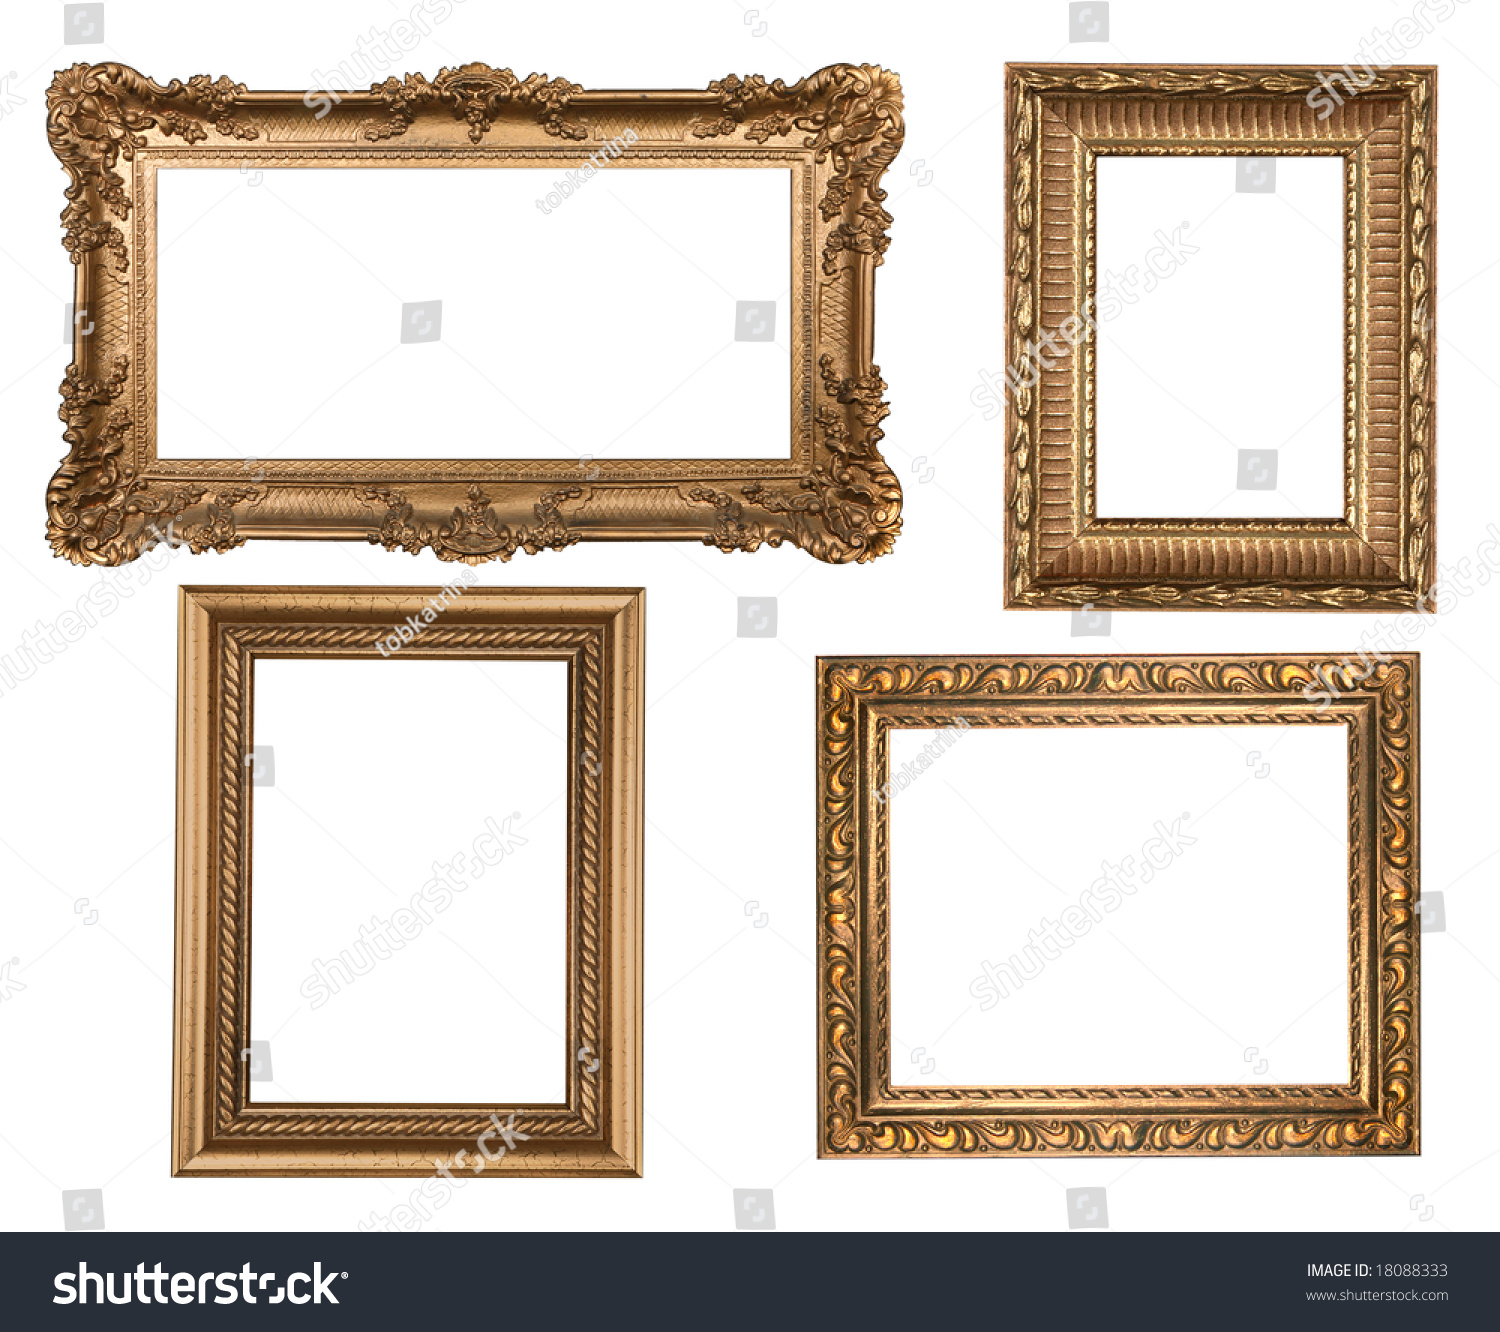 Faux Picture Frames On Walls : Decorative gold empty wall picture frames insert your own